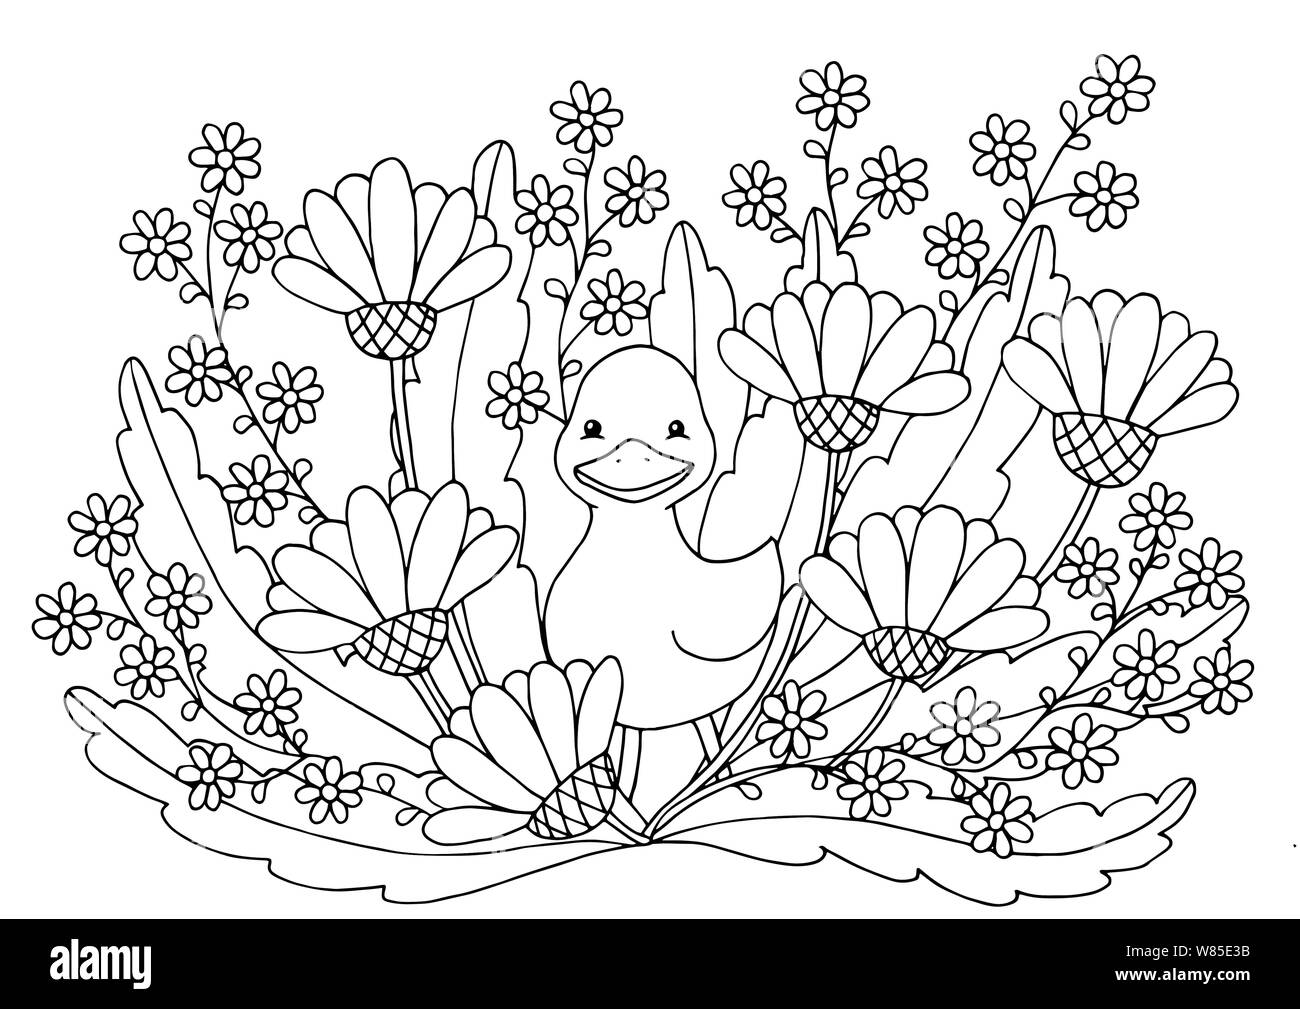 Top 20 Free Printable Duck Coloring Pages Online | 1009x1300